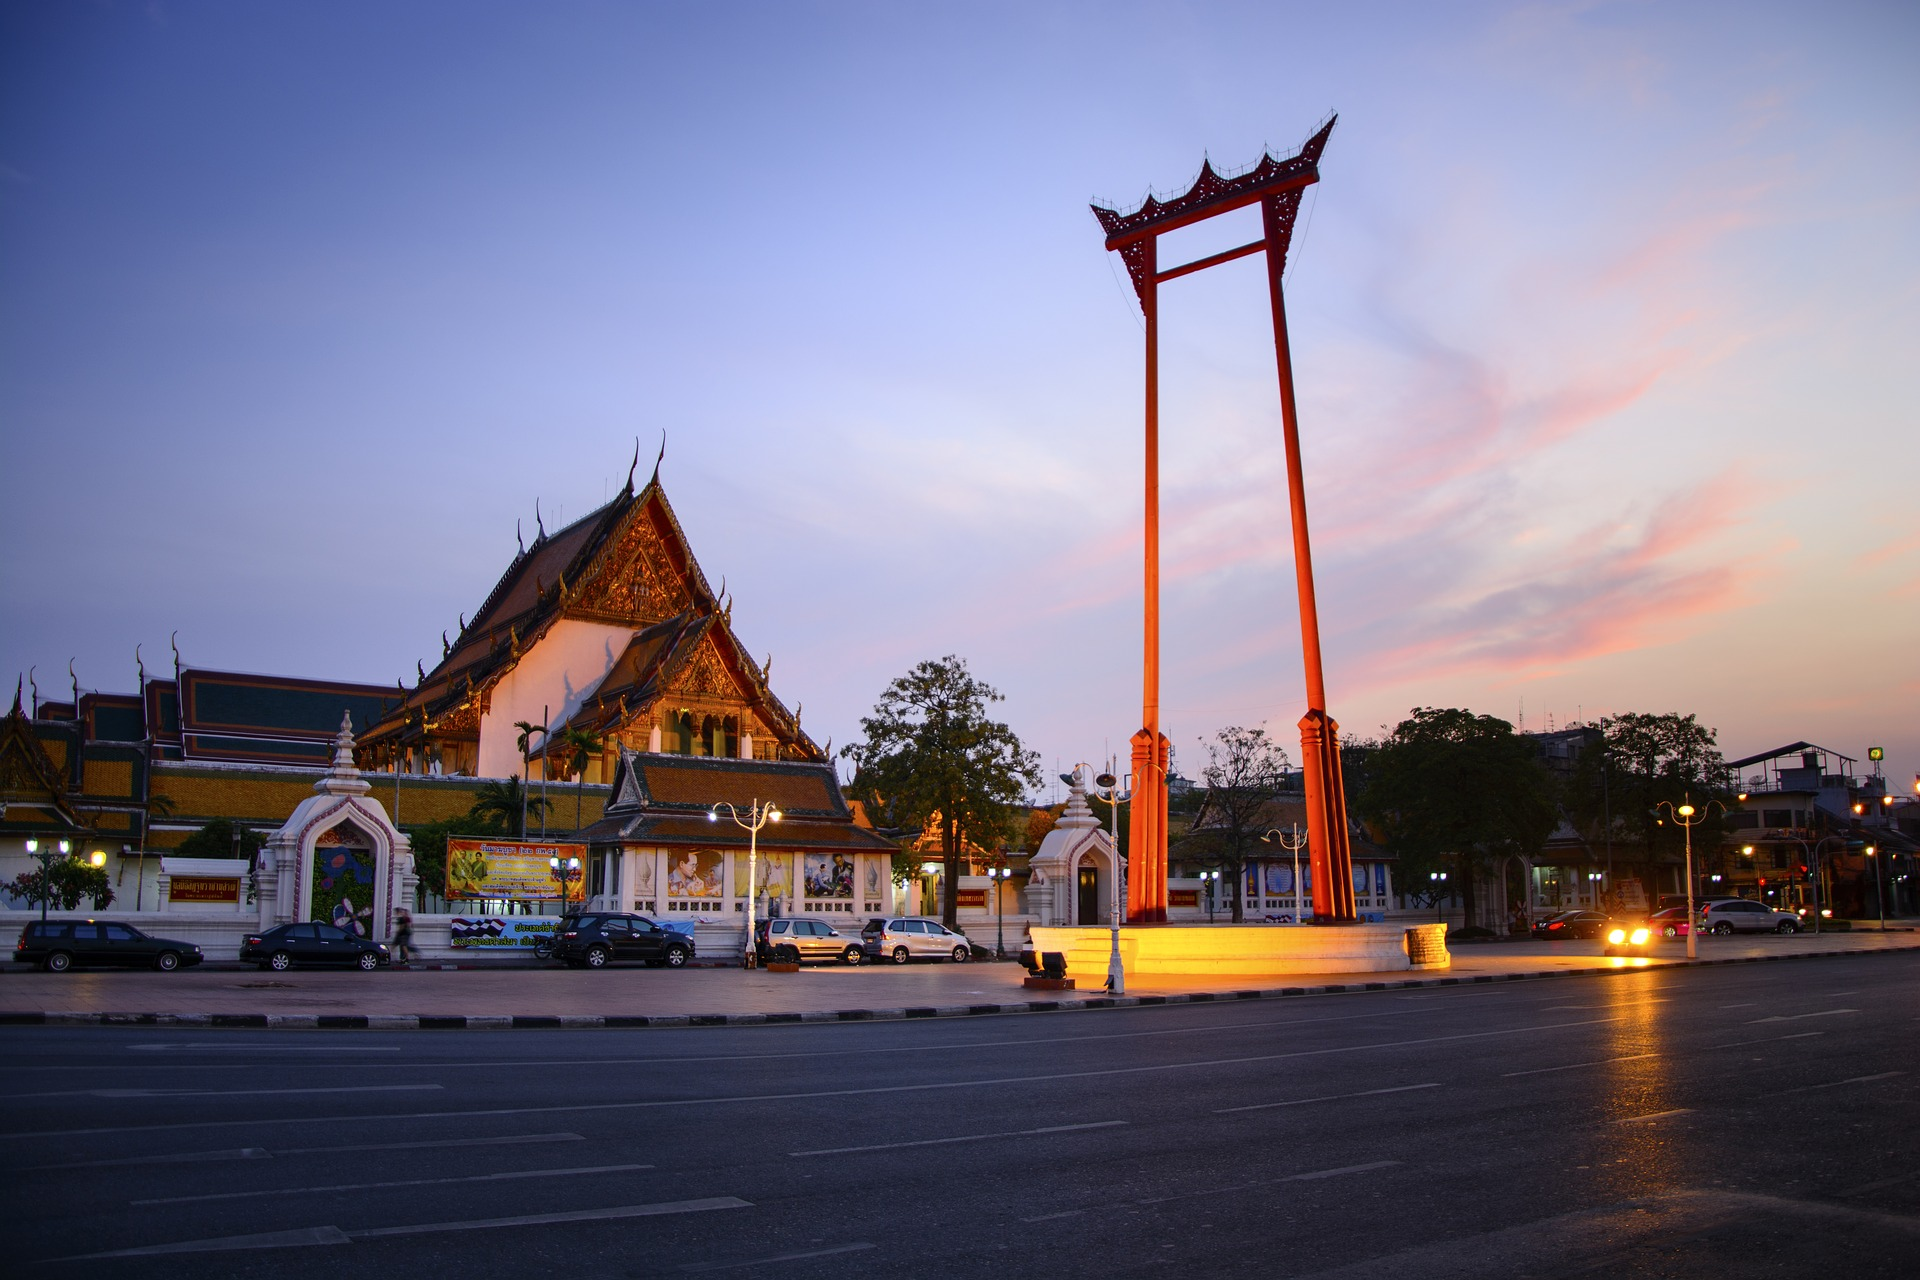 Top 8 Places To Visit In Bangkok, Thailand